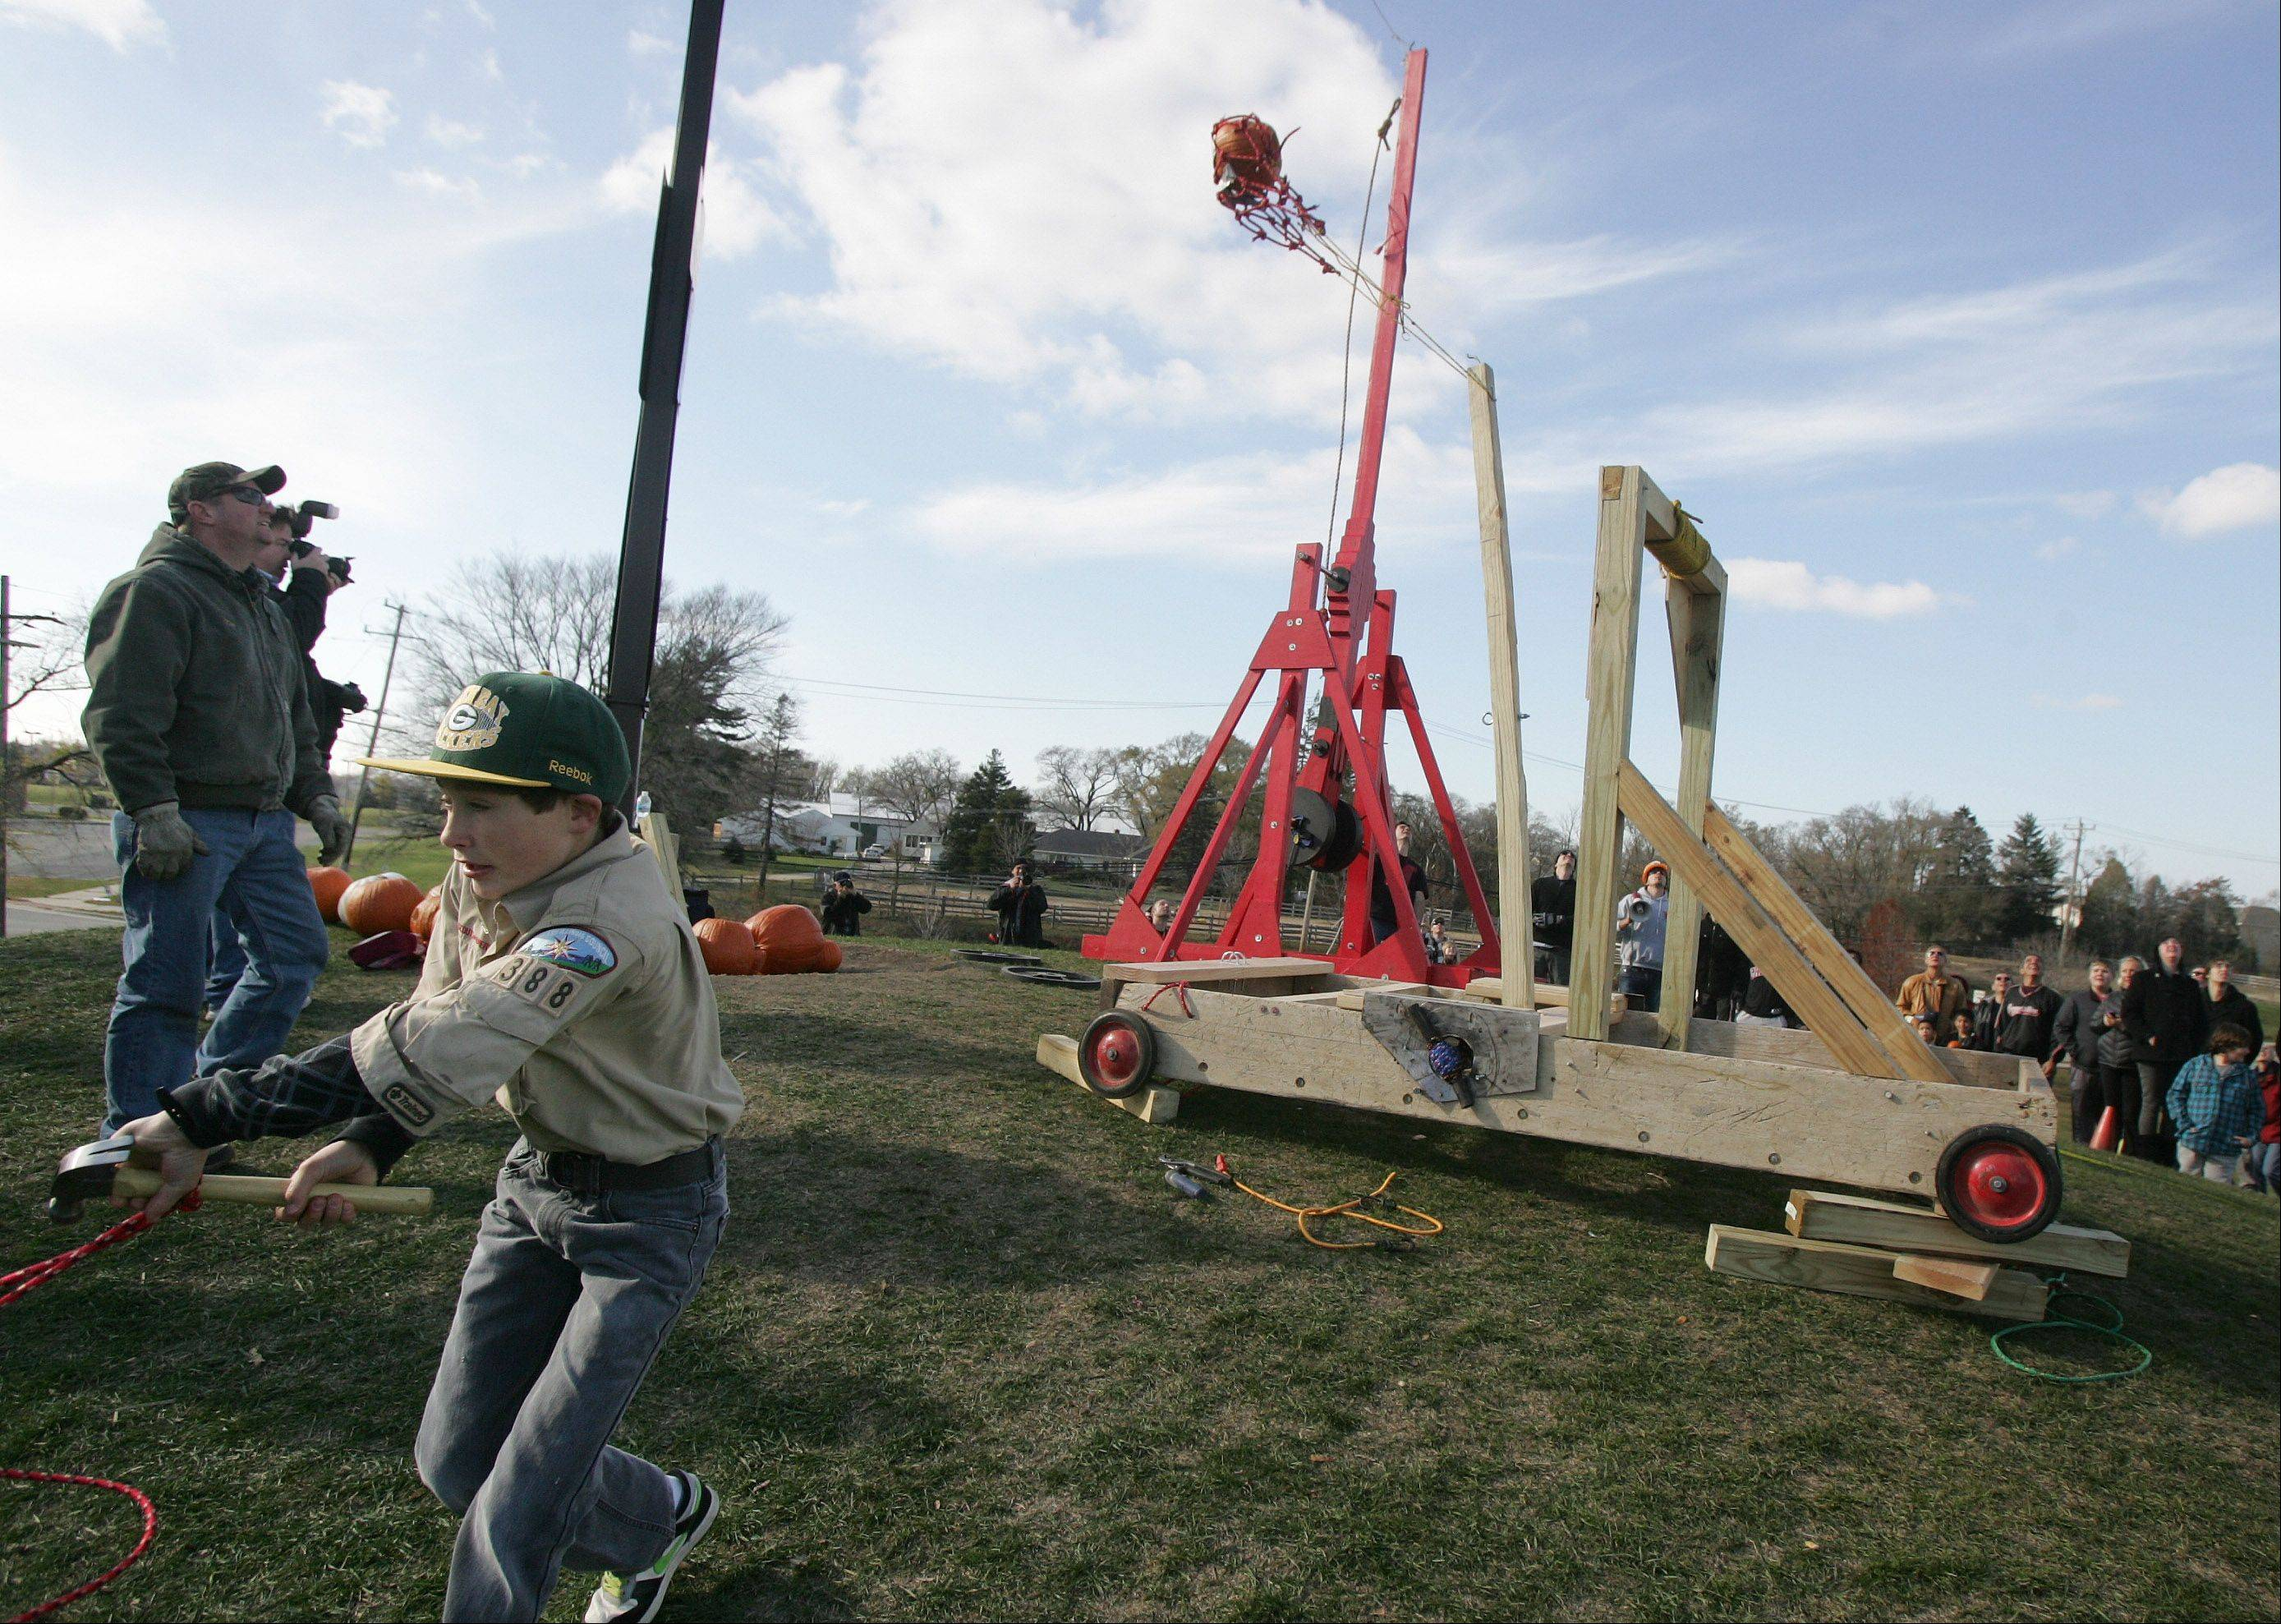 Boy Scout Jarrett Kirch, 13, left, launches a pumpkin using a trebuchet made by Mundelein Troop 388 during the annual Pumpkin Drop hosted Sunday by the Mundelein Park & Recreation District at Keith Mione Community Park. Families and children brought their Halloween pumpkins and rolled them, smashed them and launched them using the Big Red trebuchet designed by Mundelein High School students.